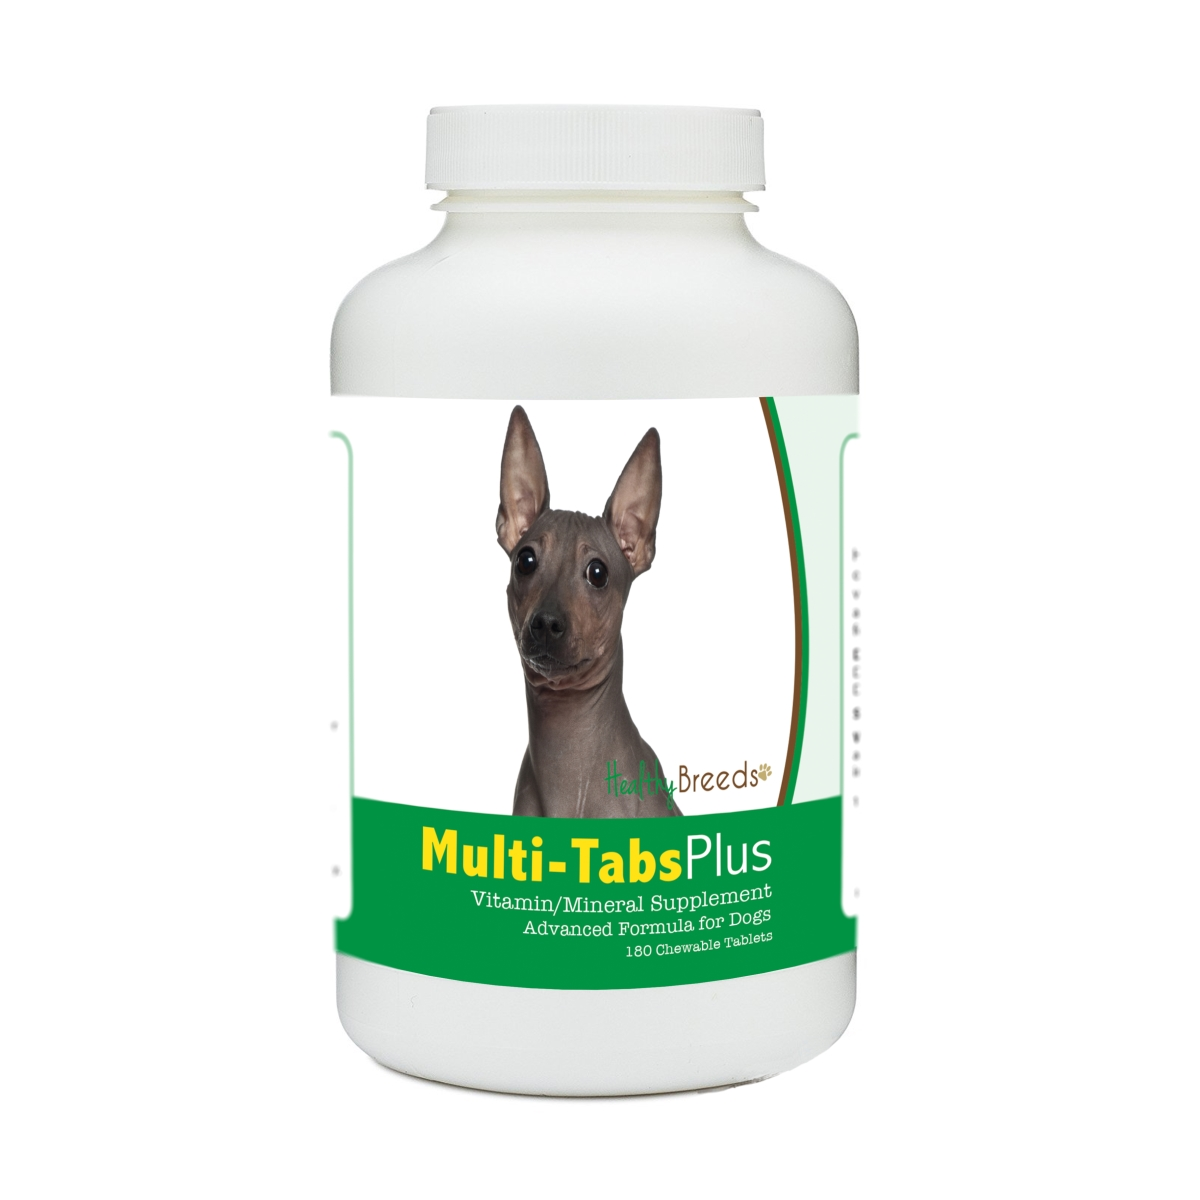 Healthy Breeds 840235181163 American Hairless Terrier Multi-Tabs Plus Chewable Tablets - 180 Count